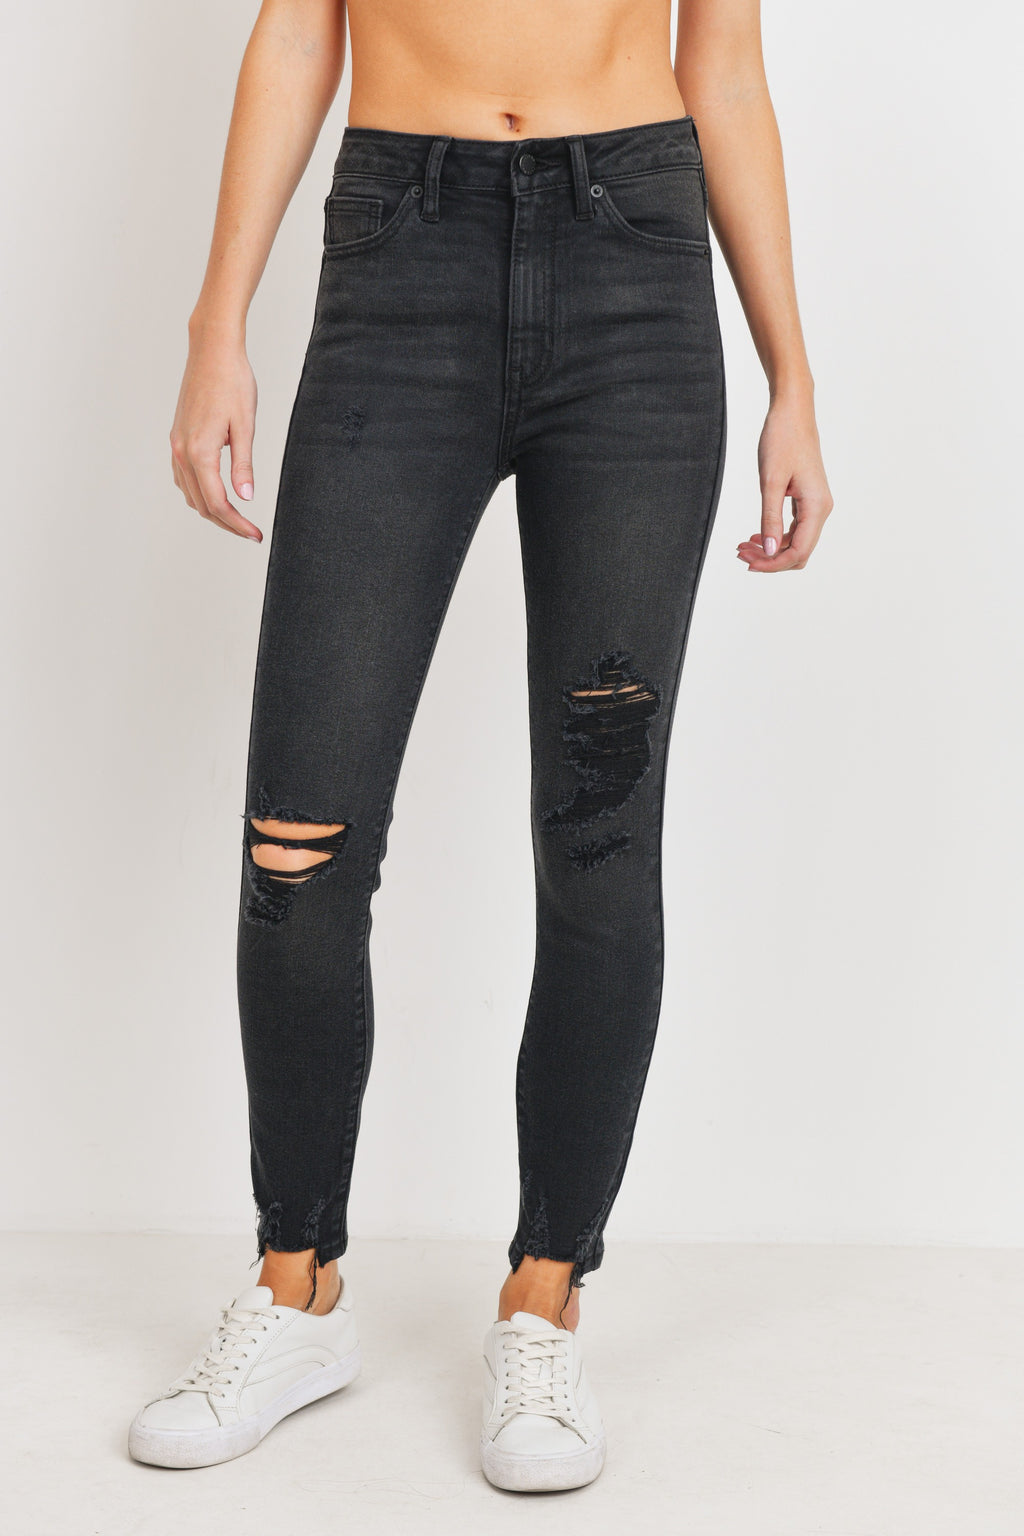 Just USA Black Distressed Denim Jeans